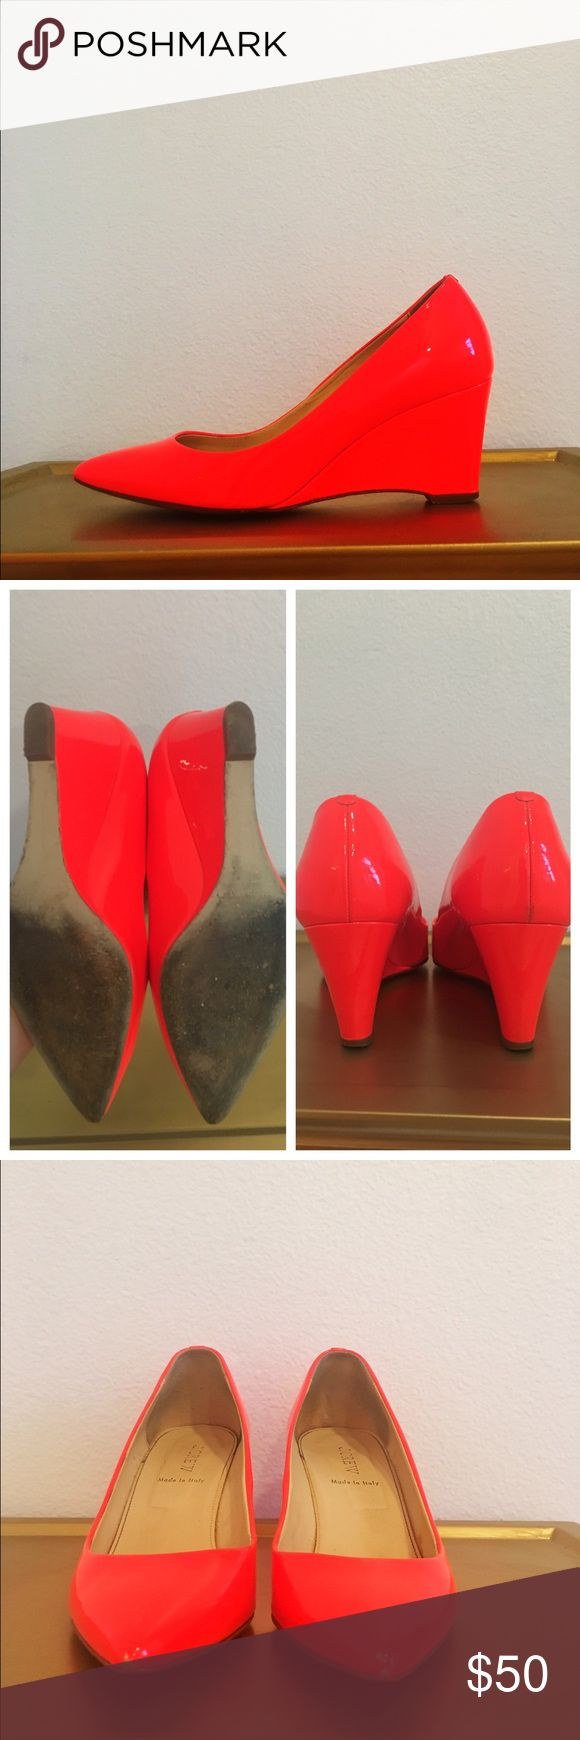 J CREW WEDGE DRESS SHOES These badass neon shoes will give you some pep in your step.  Perfect to dress up or down.  Awesome statement piece.  In great condition.  A couple very minor scuffs.  If subtlety is your thing these are not for you.  These shoes were made for walking!   J. Crew Shoes